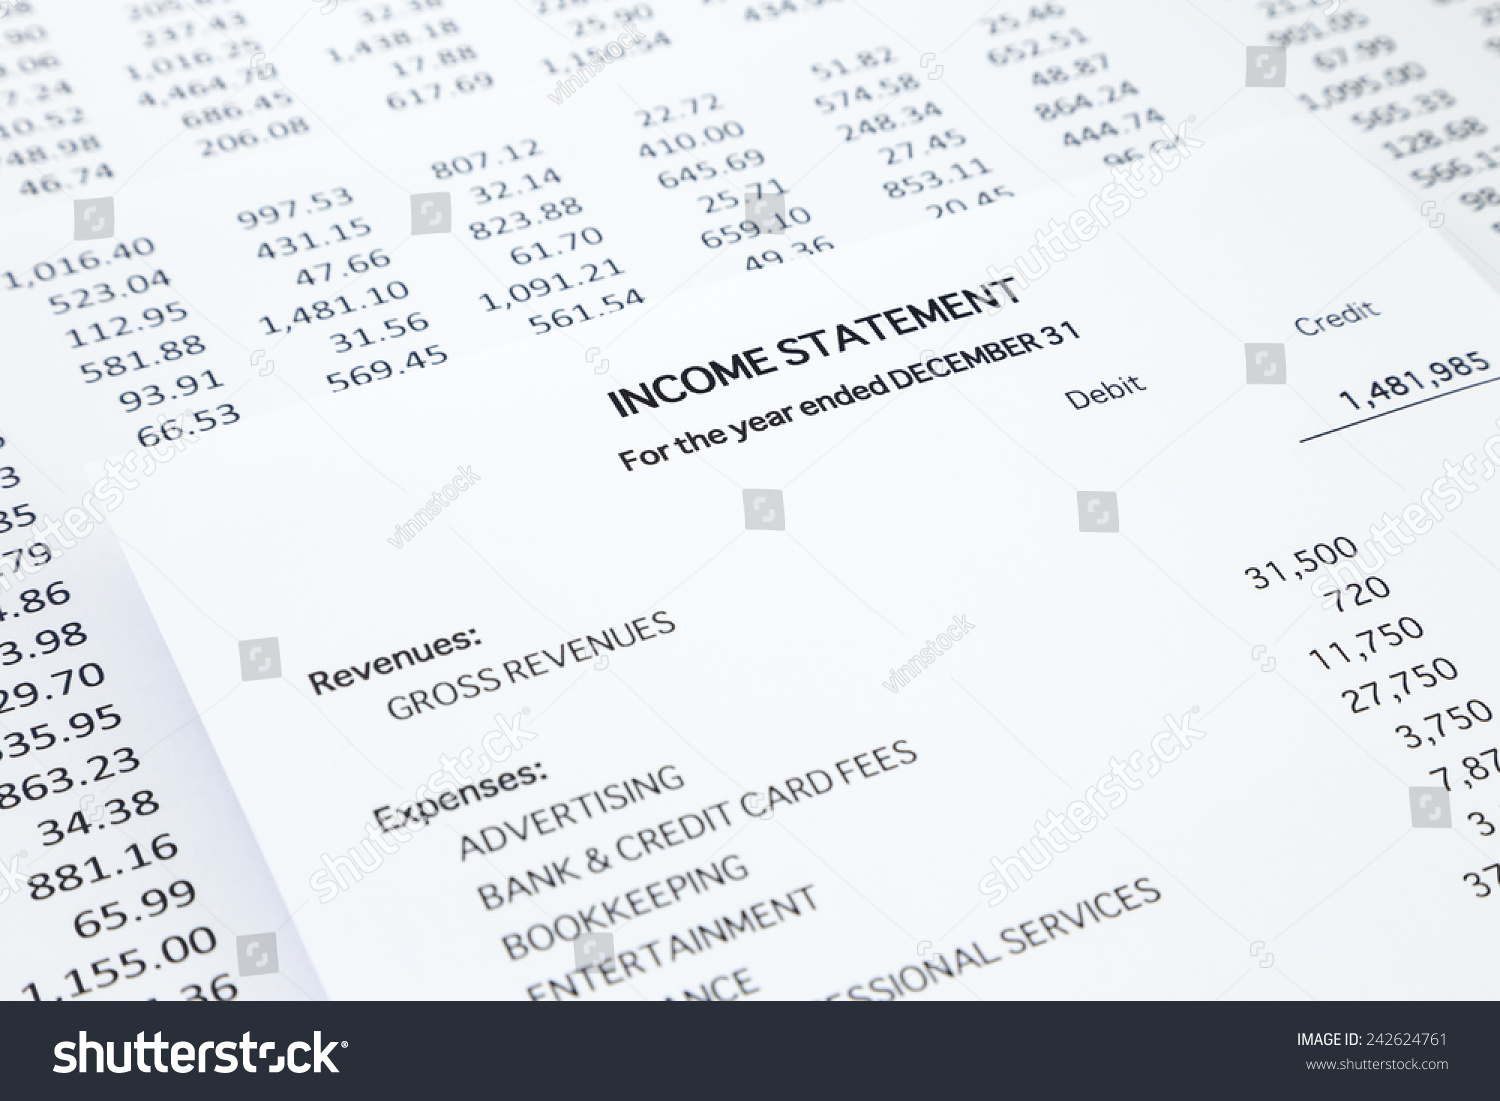 Income Statement With Detail List Of Revenues And Expenses, Accounting  Concept For Small Business,